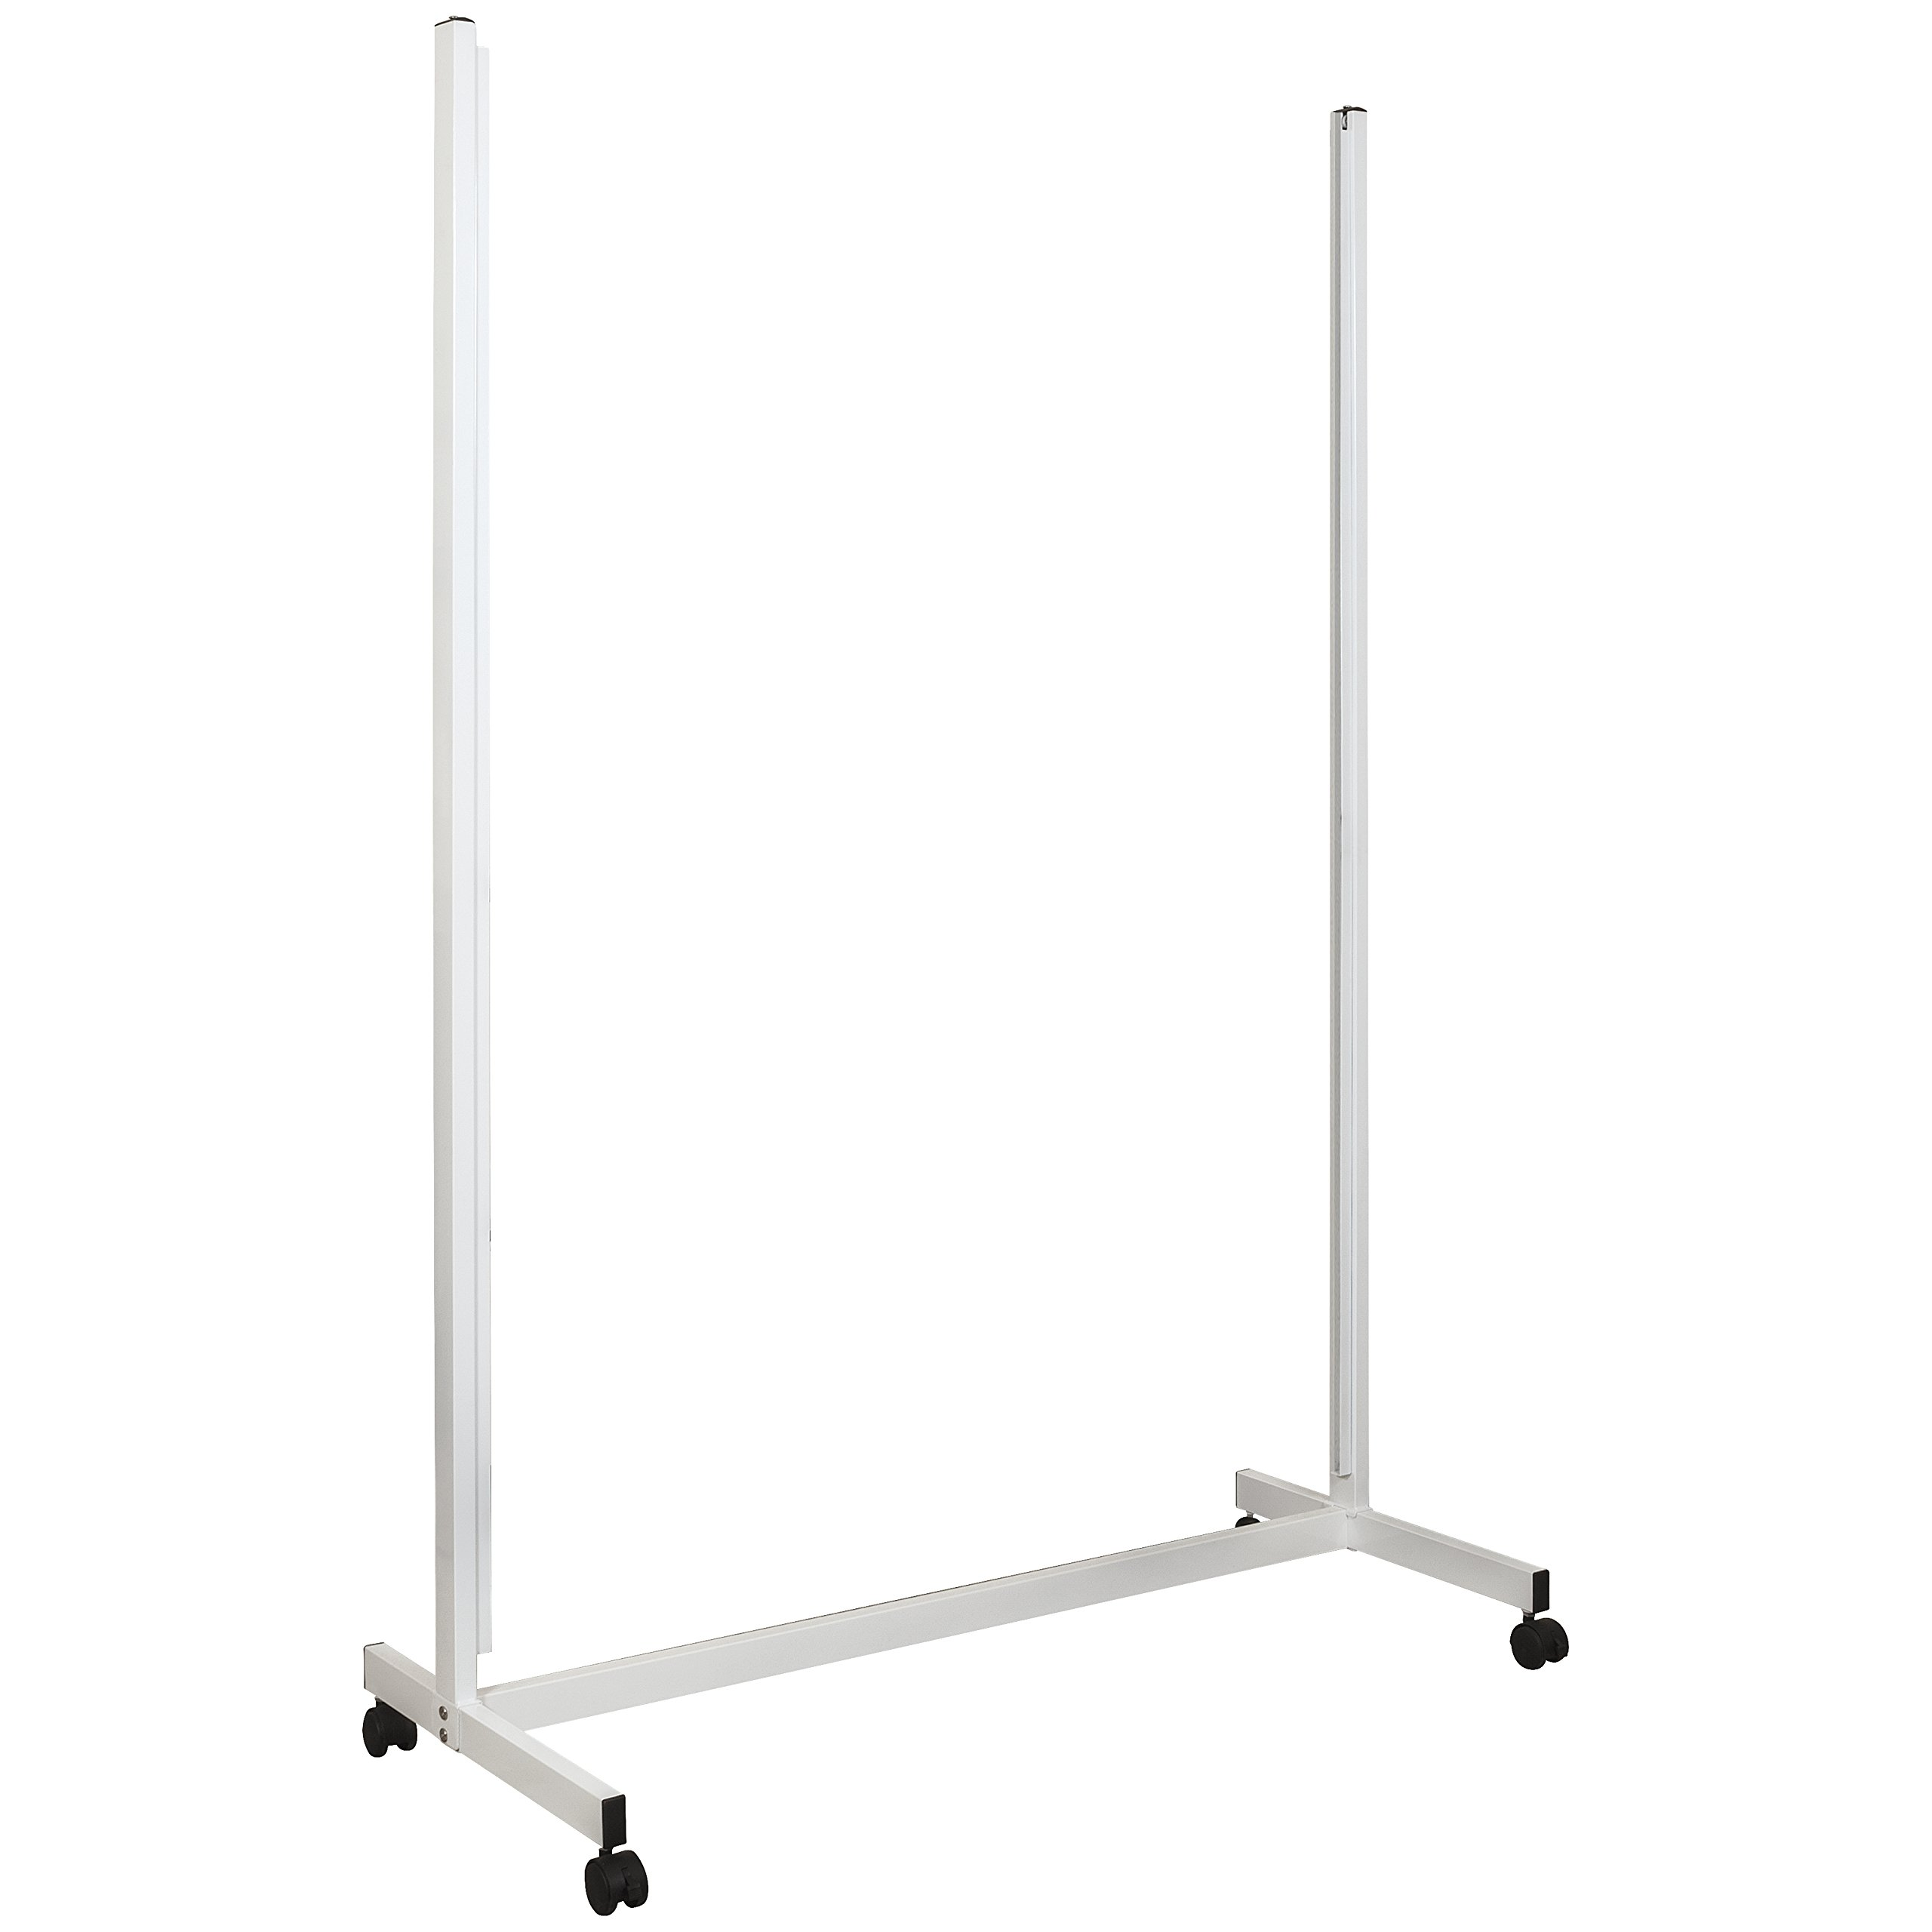 Balt Essentials Mobile Vertical Sliding Whiteboard, Stand Only, Box 2 of 2 and must order box 1 to complete unit (84187)